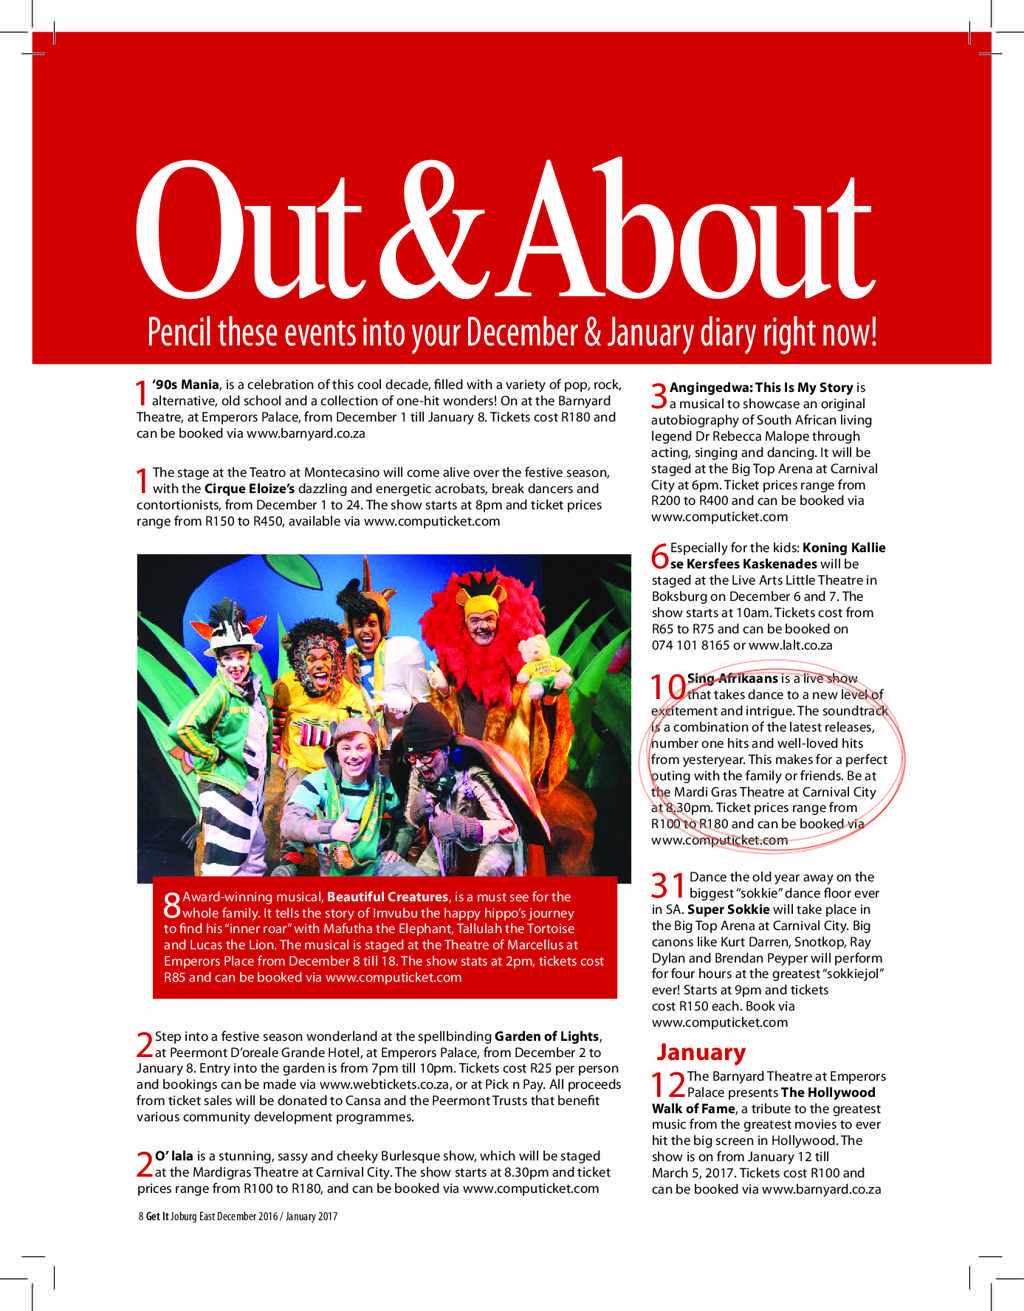 get-it-magazine-december-january-2016-epapers-page-8